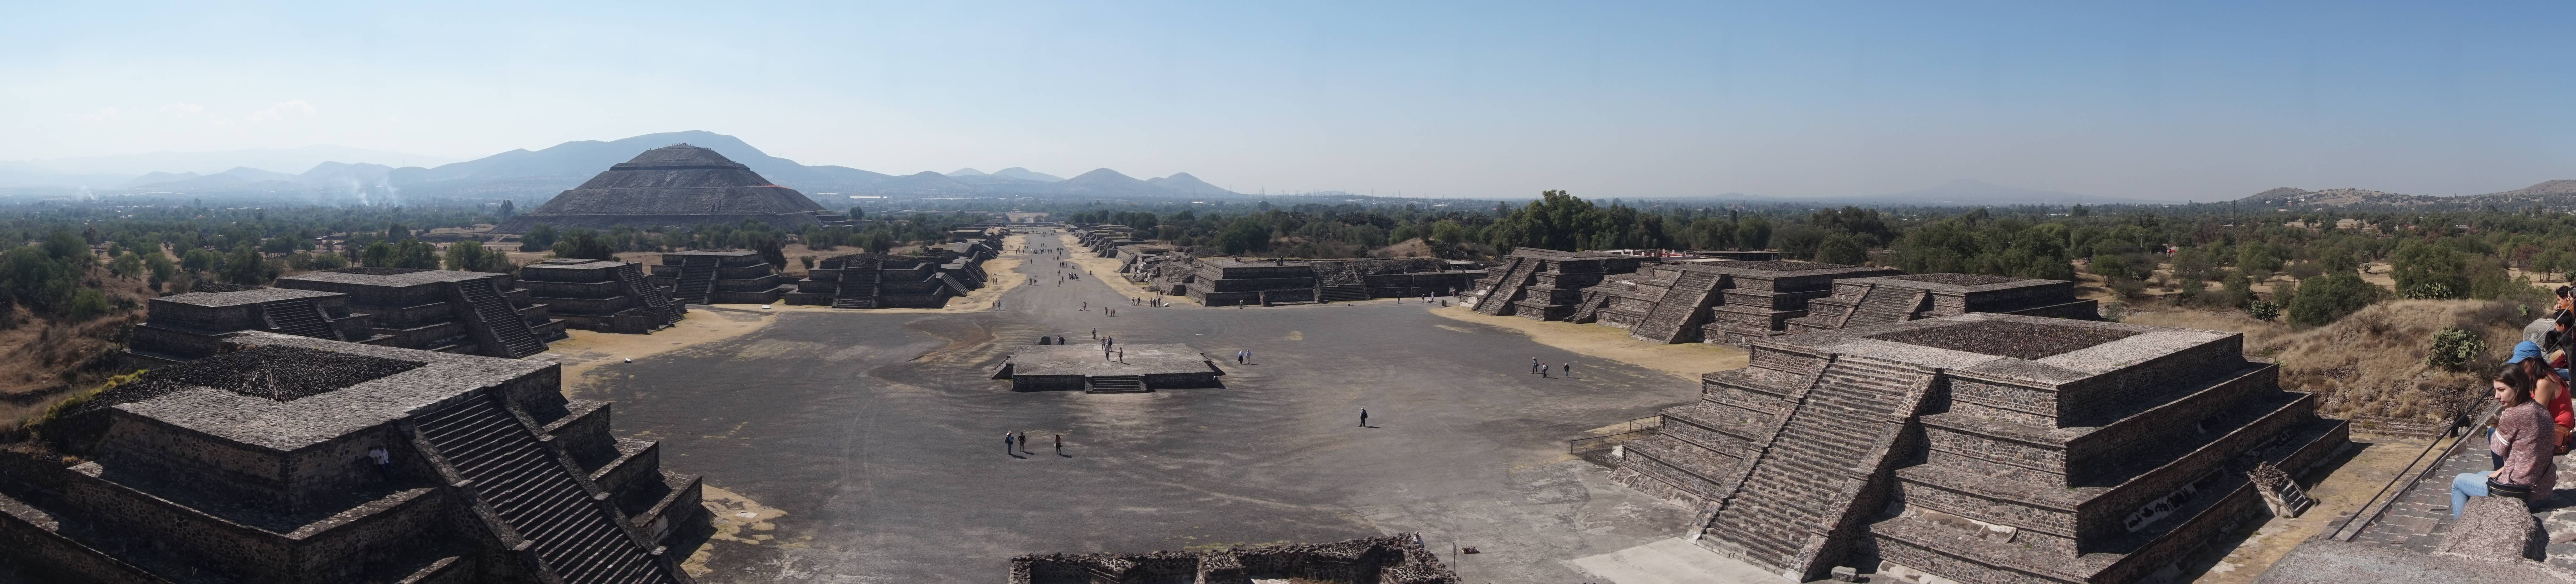 Photo 1: Teotihuacan